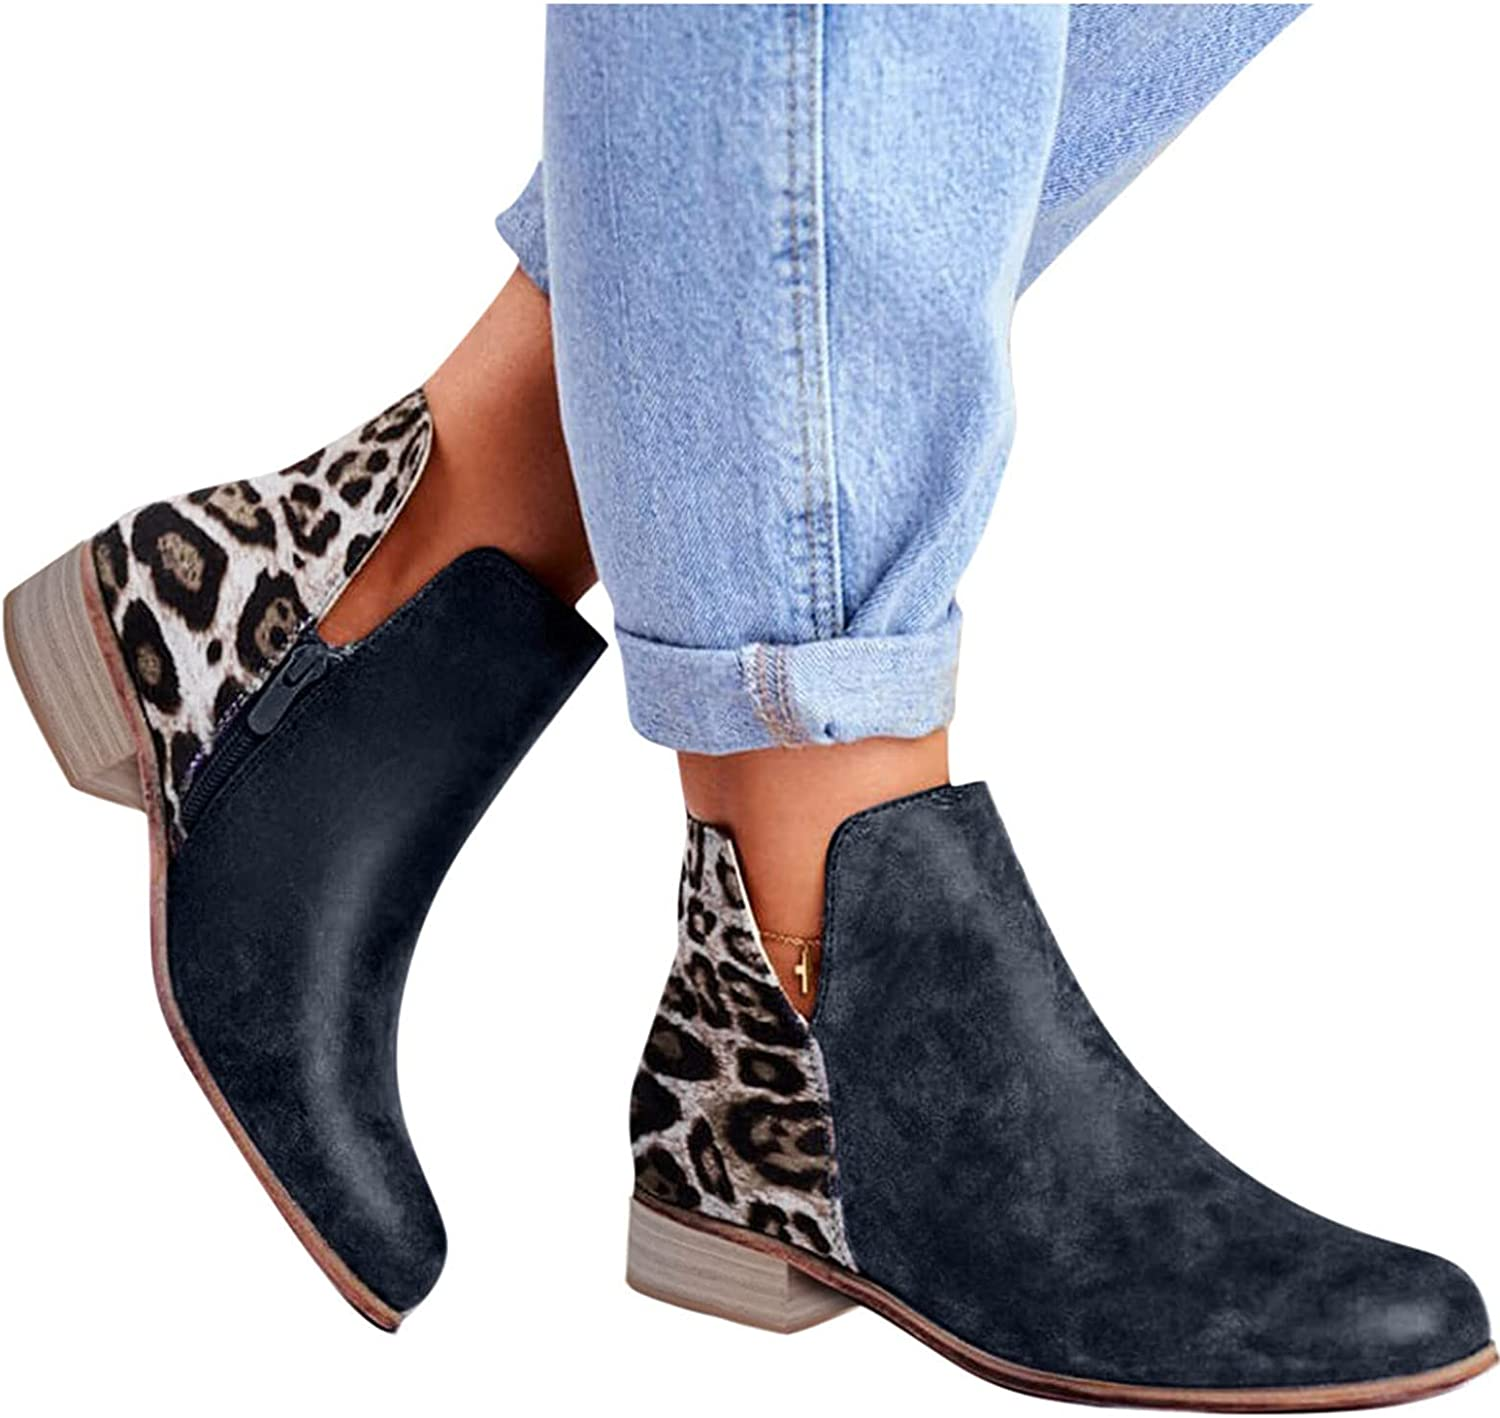 UOCUFY Ankle Boots for Women Low Heel V Cutout On Slip Large-scale sale A Daily bargain sale Leopard